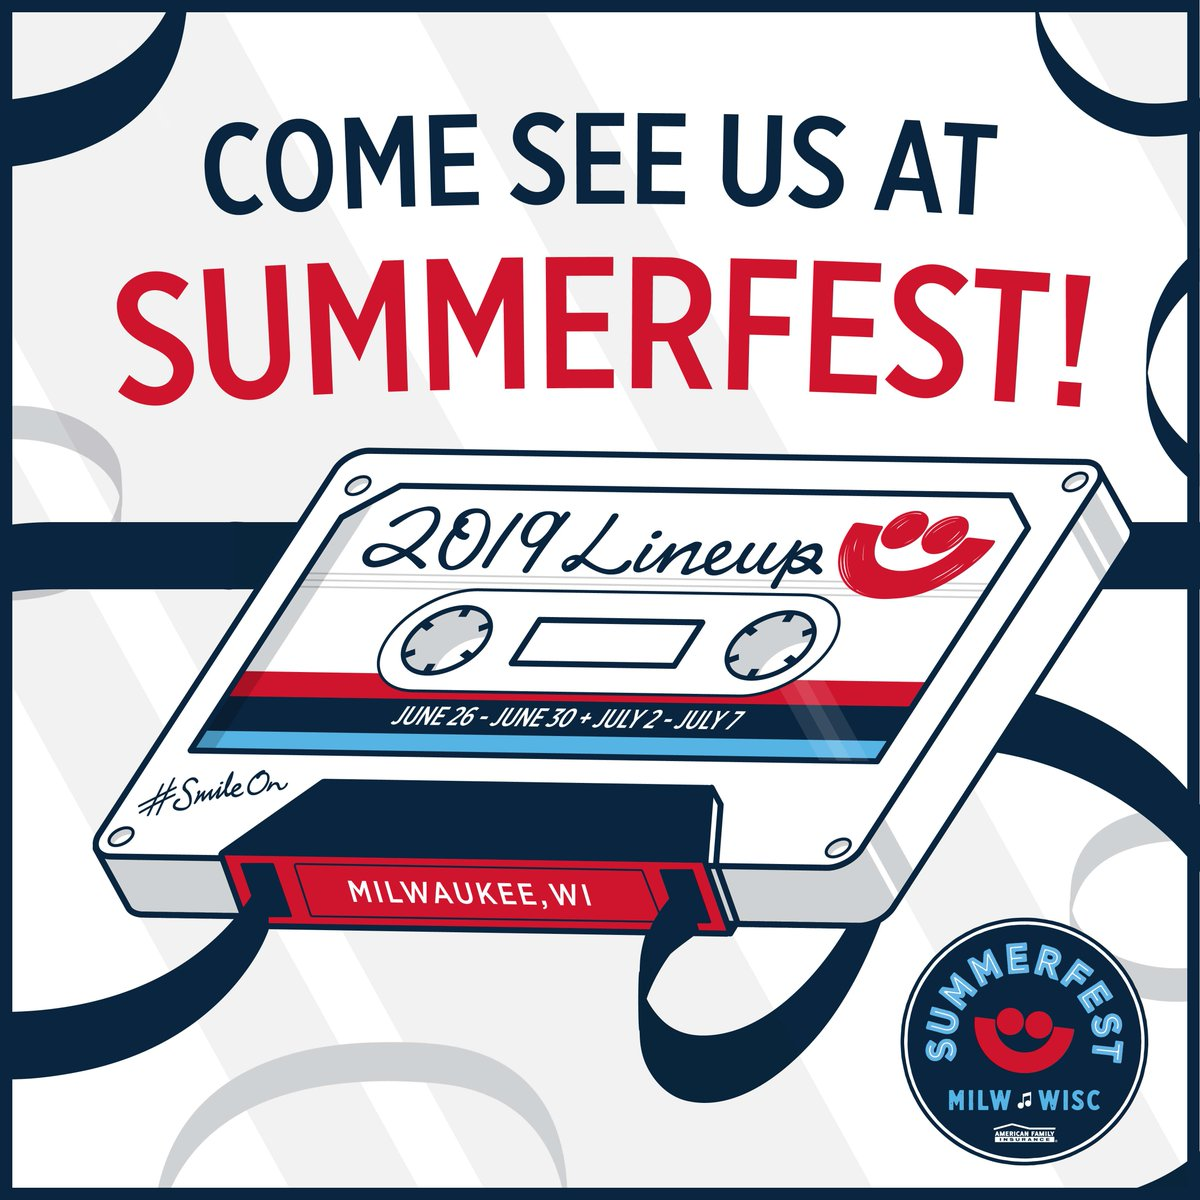 deep in the studio making the album —- but need to come out and feel your energy. summerfest. let's make this a legendary bleachers show. see you july 6th milwaukee https://t.co/4dIGuK7nmk https://t.co/4OCkn8nEfE